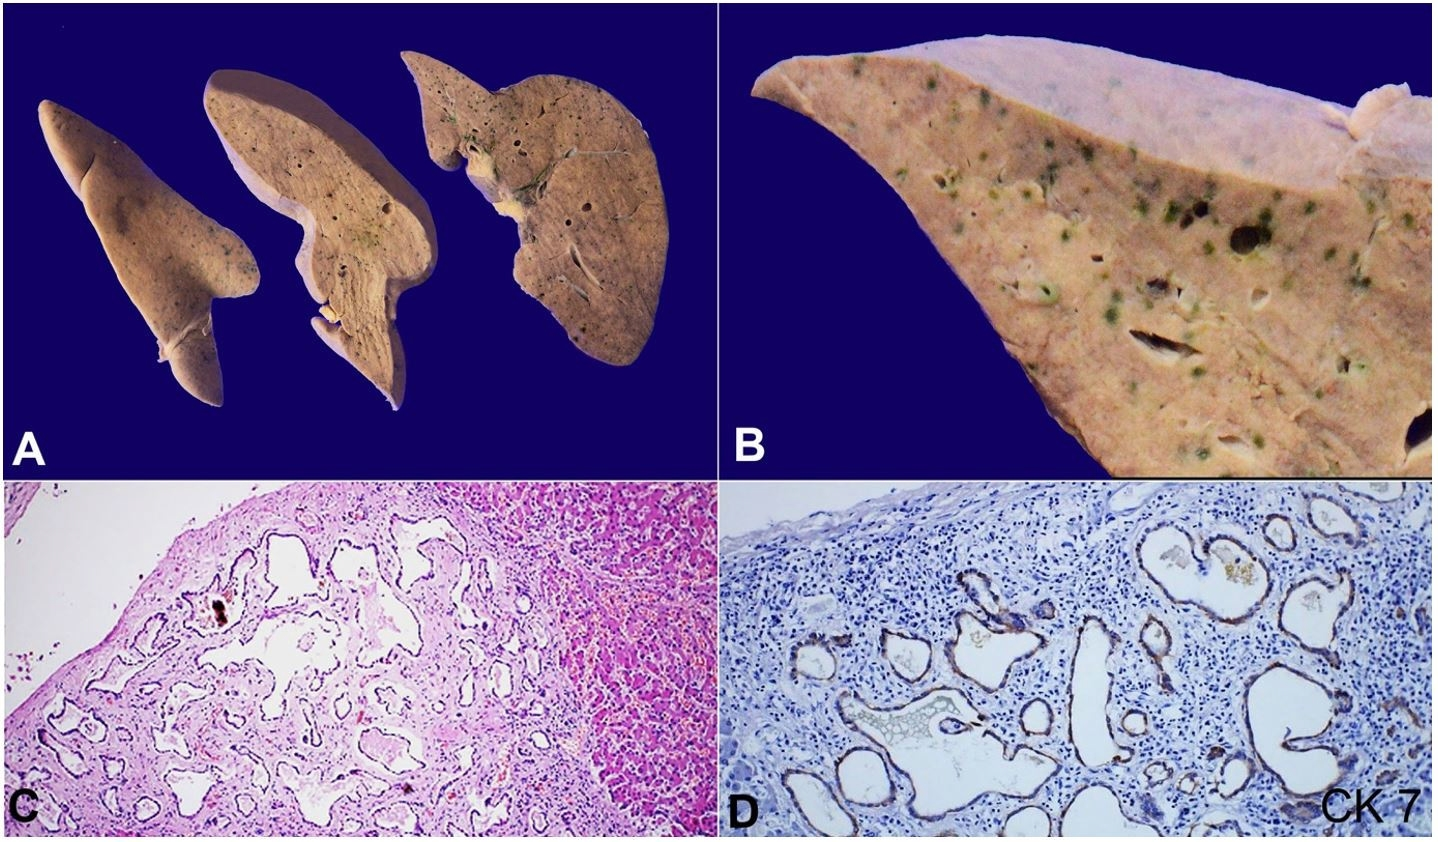 A and B - Cut surface of the liver show presence of multiple bile stained lesions measuring 3 to 15 mm in diameter in subcapsular location. B A closer view of the subcapsular bile stained lesions; C and D – Photomicrographs of the liver shows mis-shaped dilated bile ducts lined by cuboidal cells, embedded in a fibrotic stroma (H&E, 200X) and cuboidal cells lining the ducts show cytoplasmic staining for Cytokeratin 7.